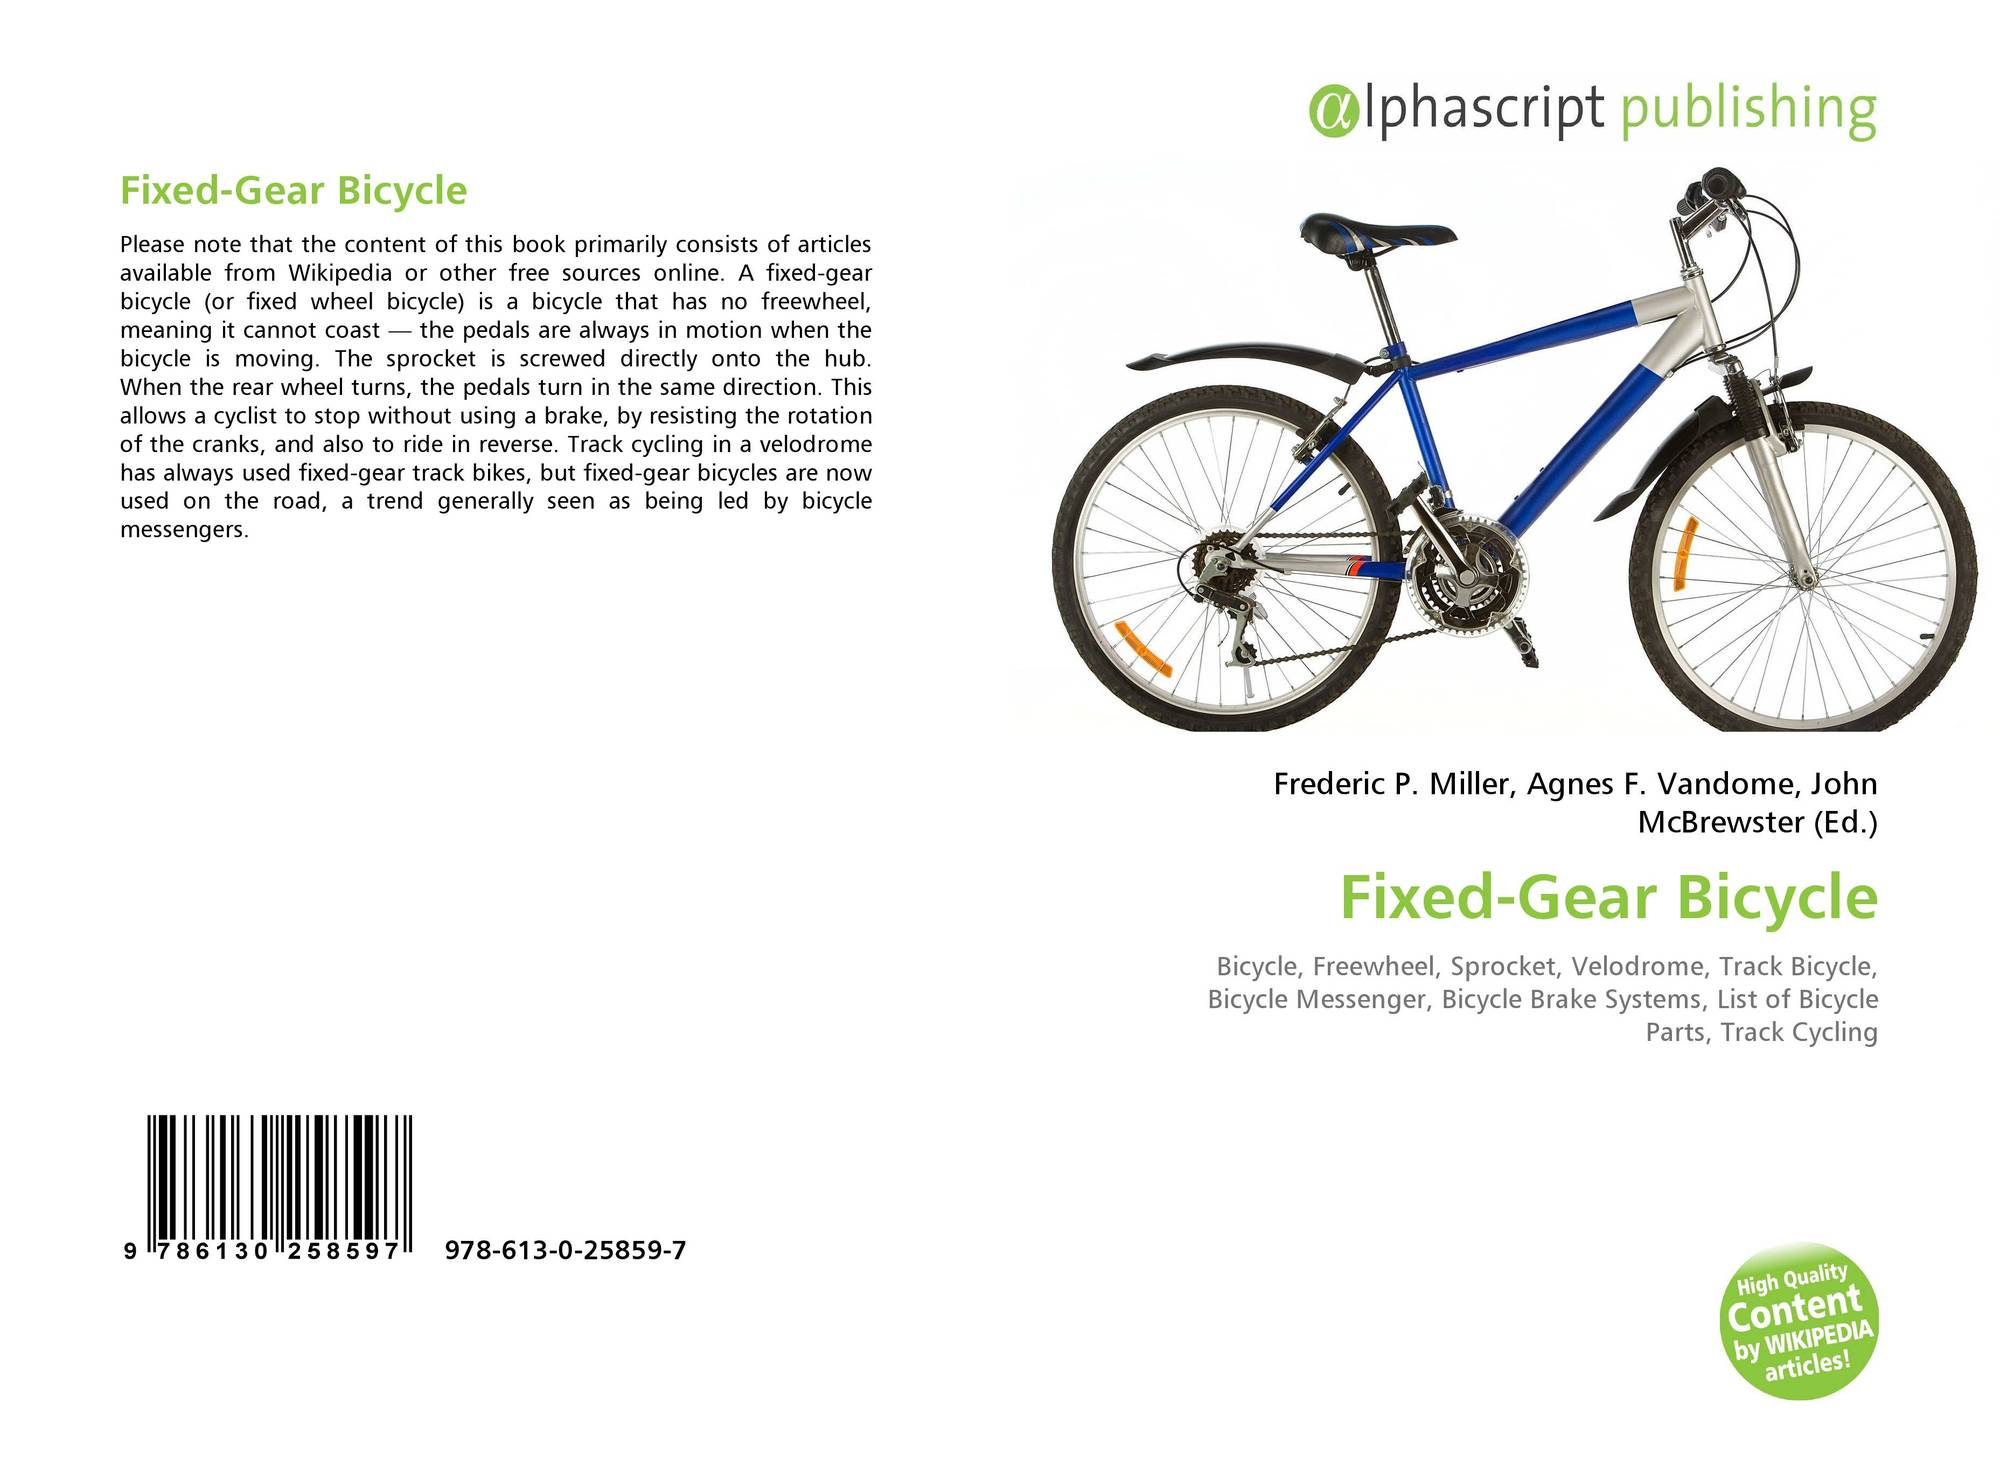 Fixed-Gear Bicycle, 978-613-0-25859-7, 6130258593 ,9786130258597